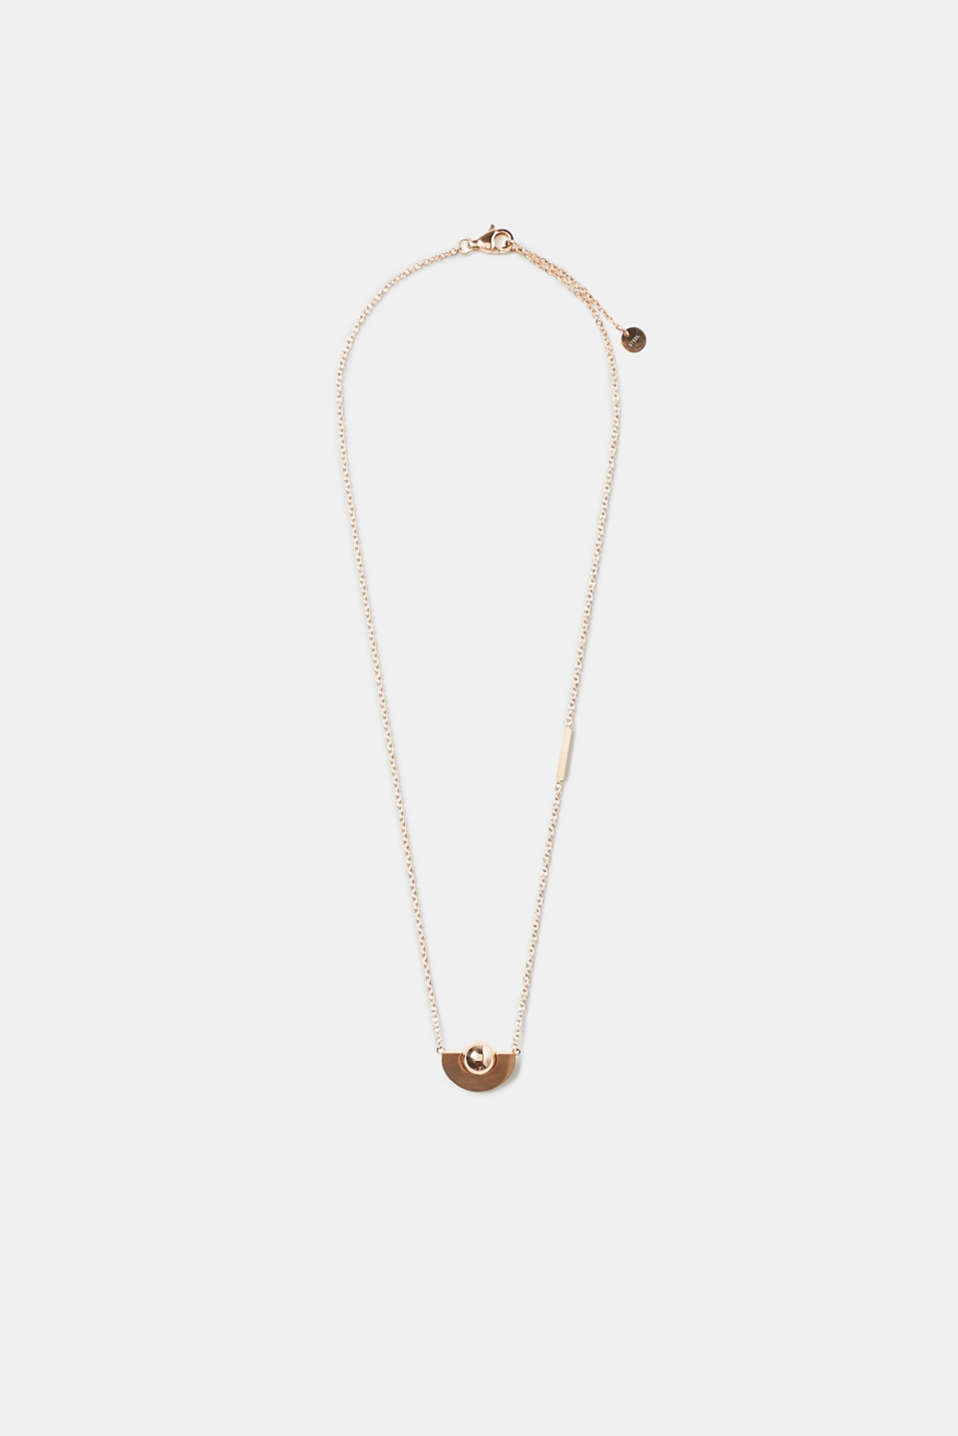 Esprit - Fine necklace with rose gold pendant